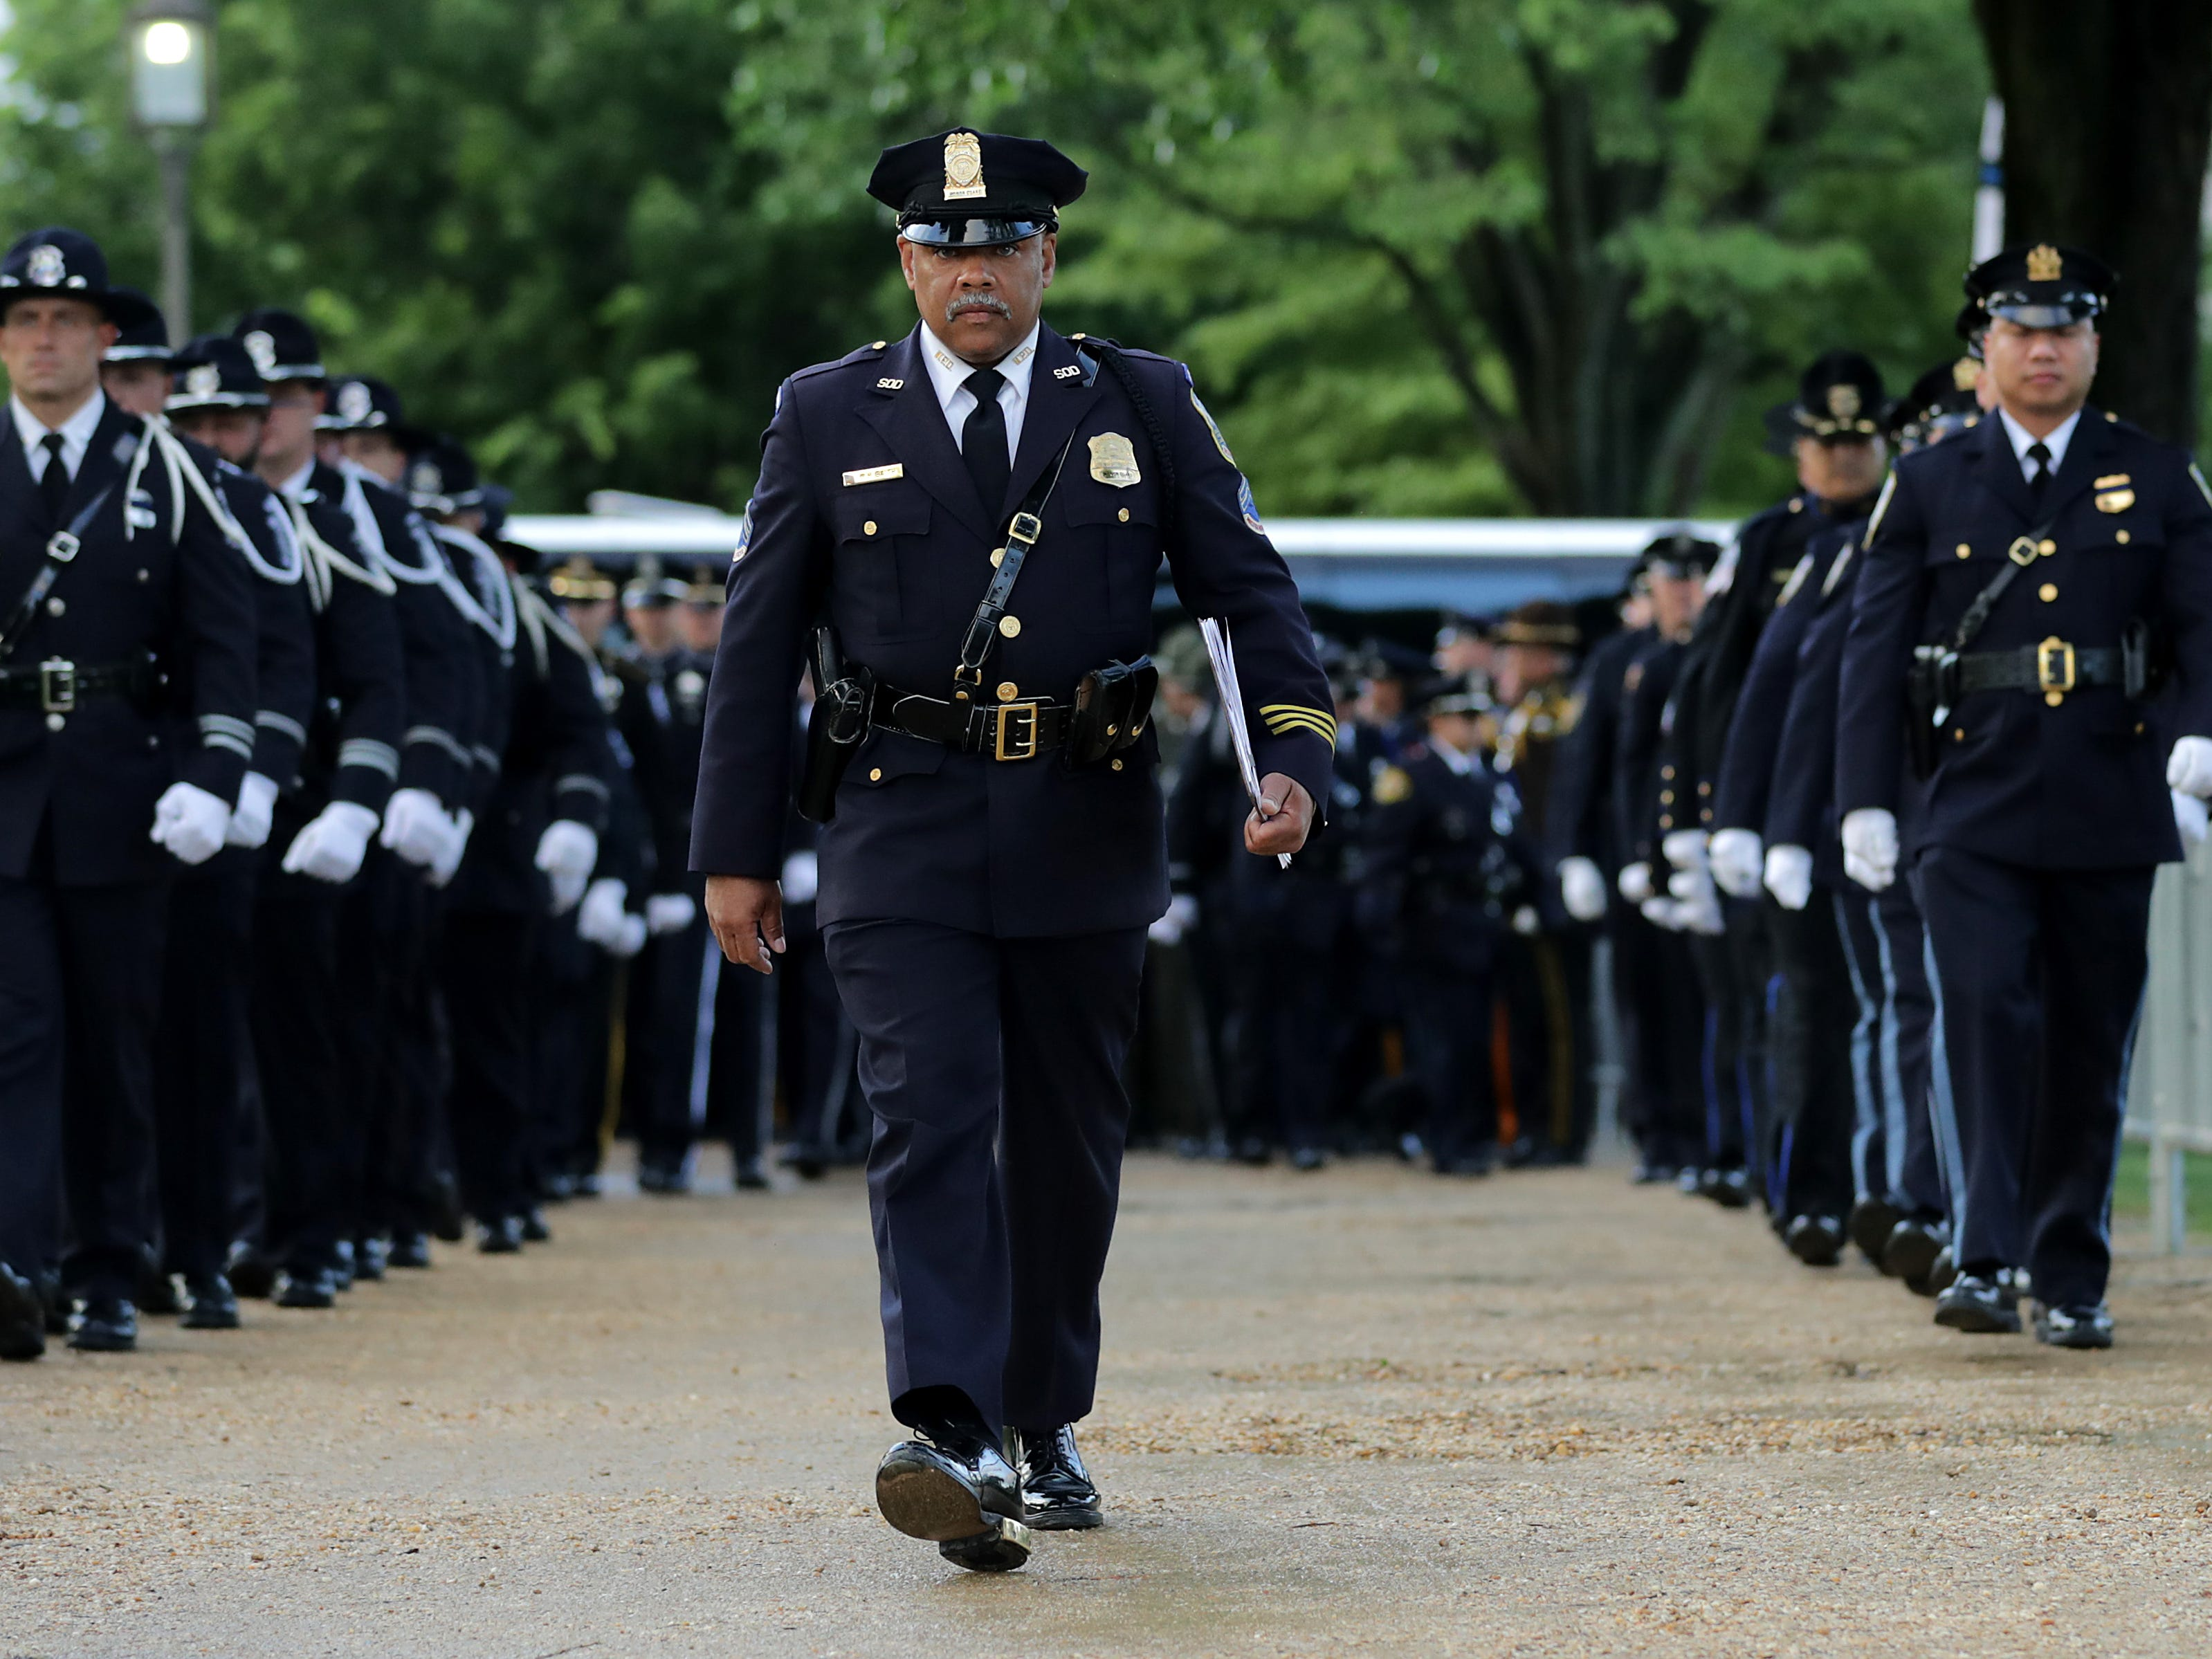 Law enforcement officers prepare for the National Police Week 31st Annual Candlelight Vigil.